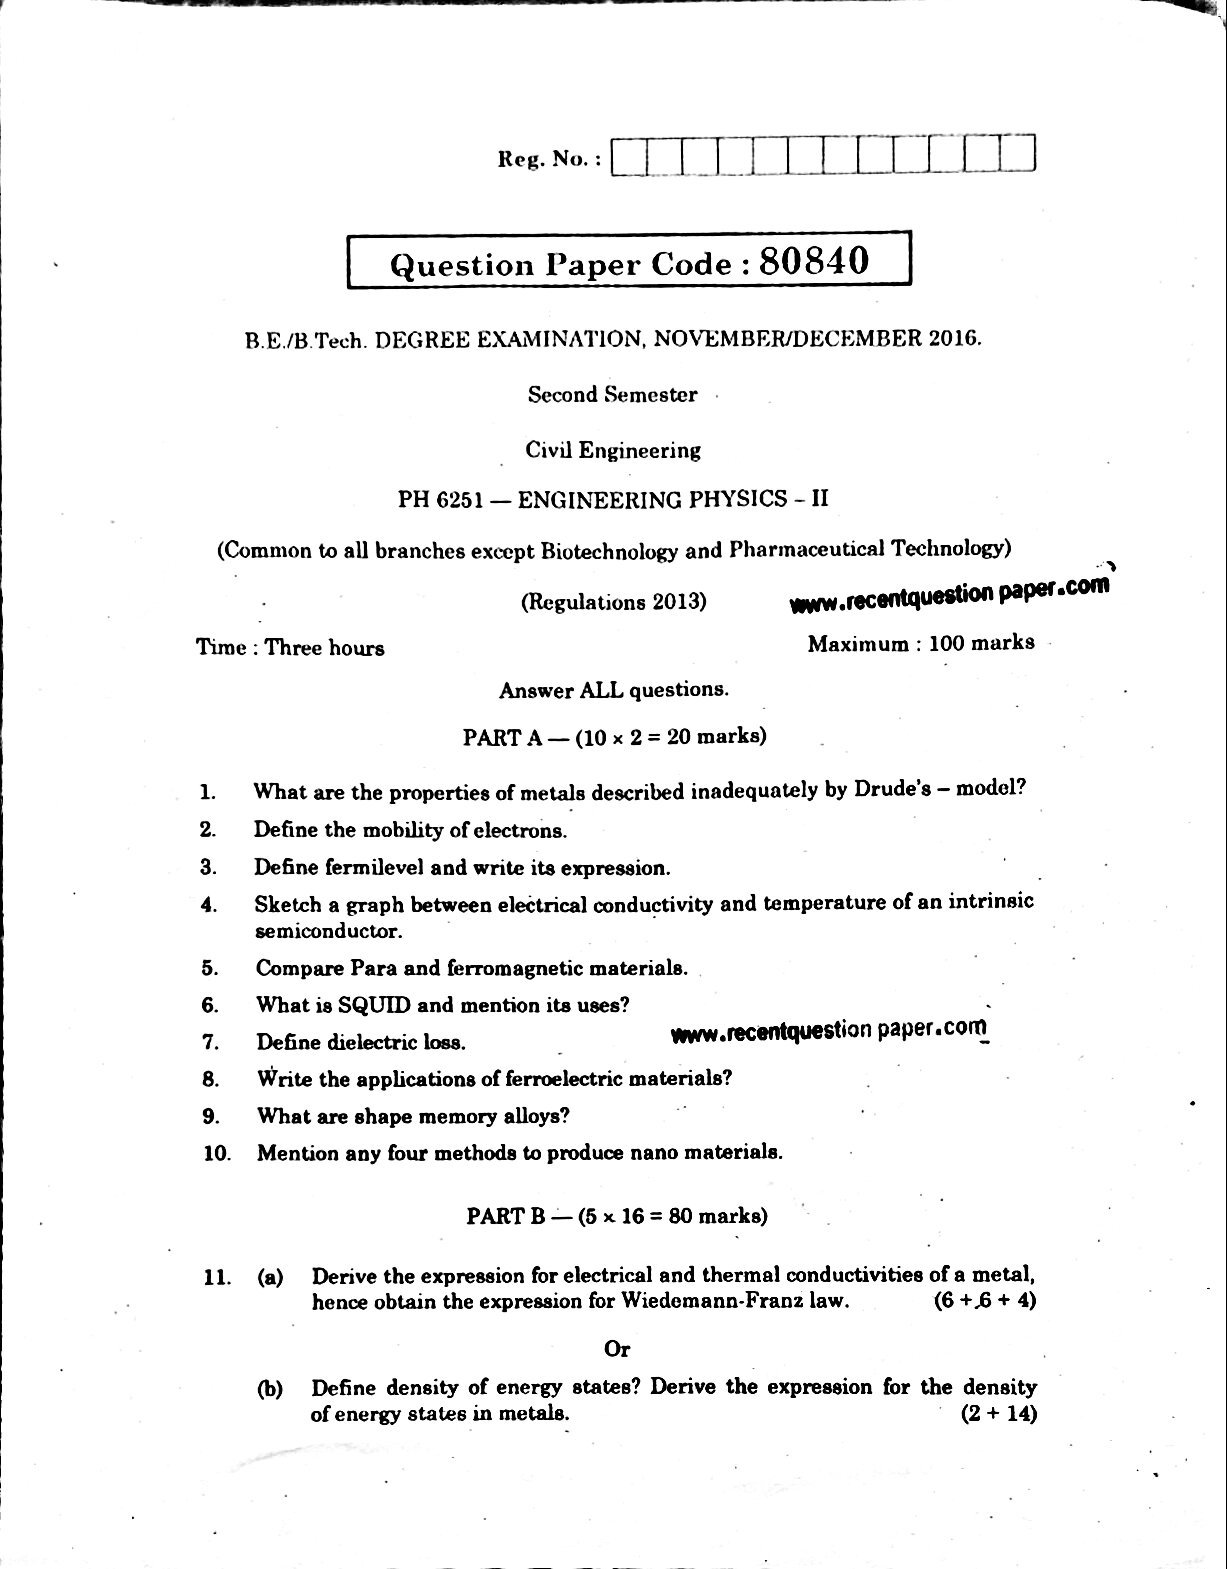 PH6251 ENGINEERING PHYSICS-II 0 - Recent Question Paper